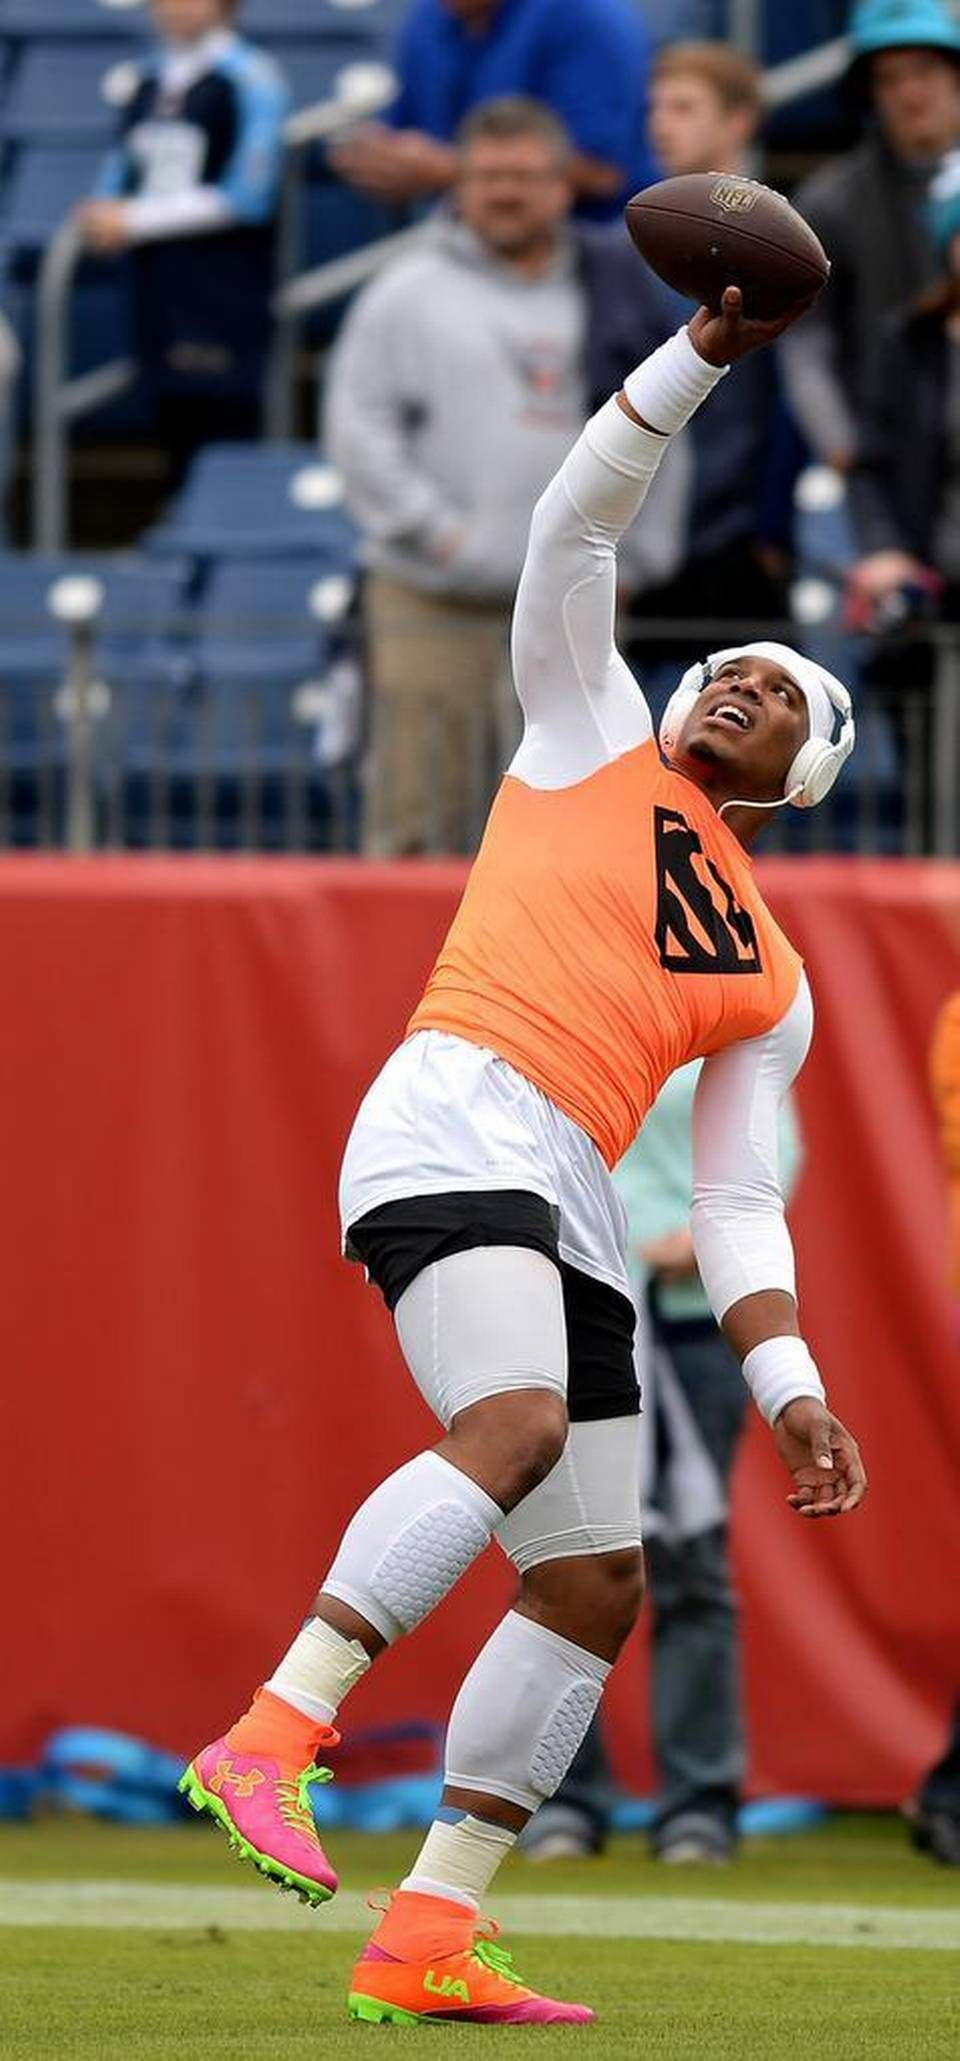 2d6c2700b6335c6aa0c019bf62948435 carolina panthers quarterback cam newton catches a thrown ball one